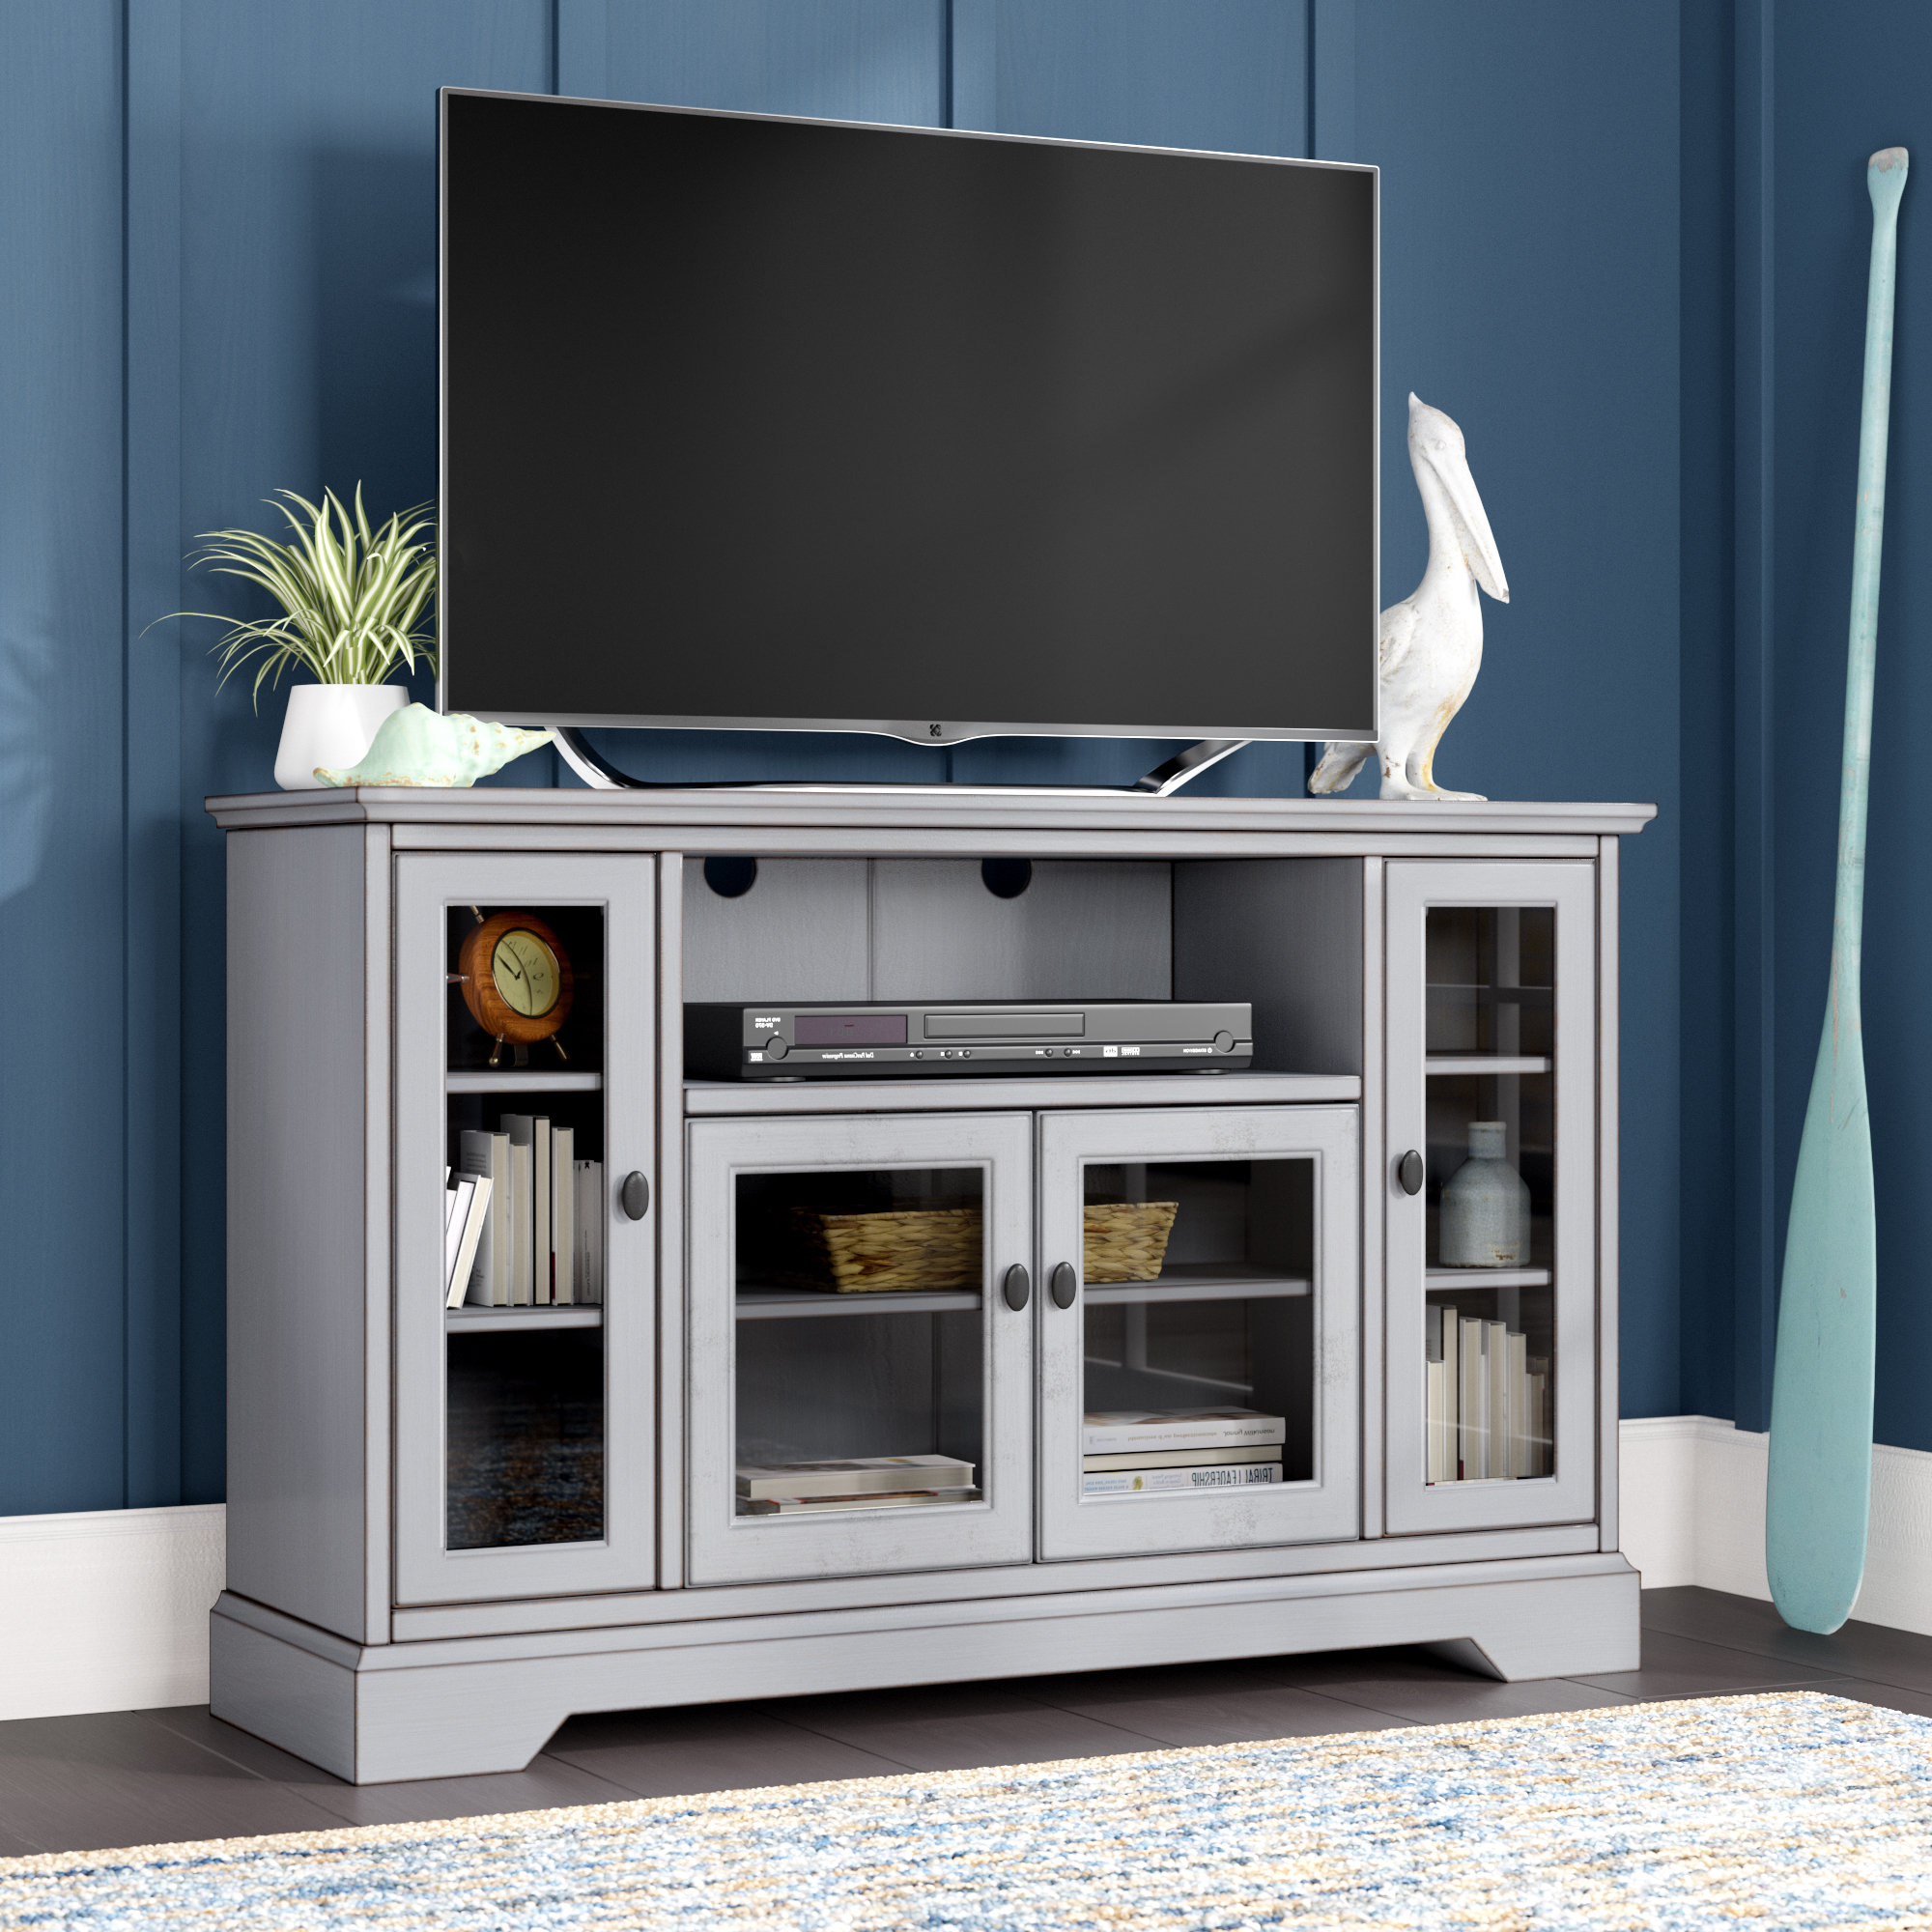 Wayfair Pertaining To Ducar 74 Inch Tv Stands (View 15 of 20)